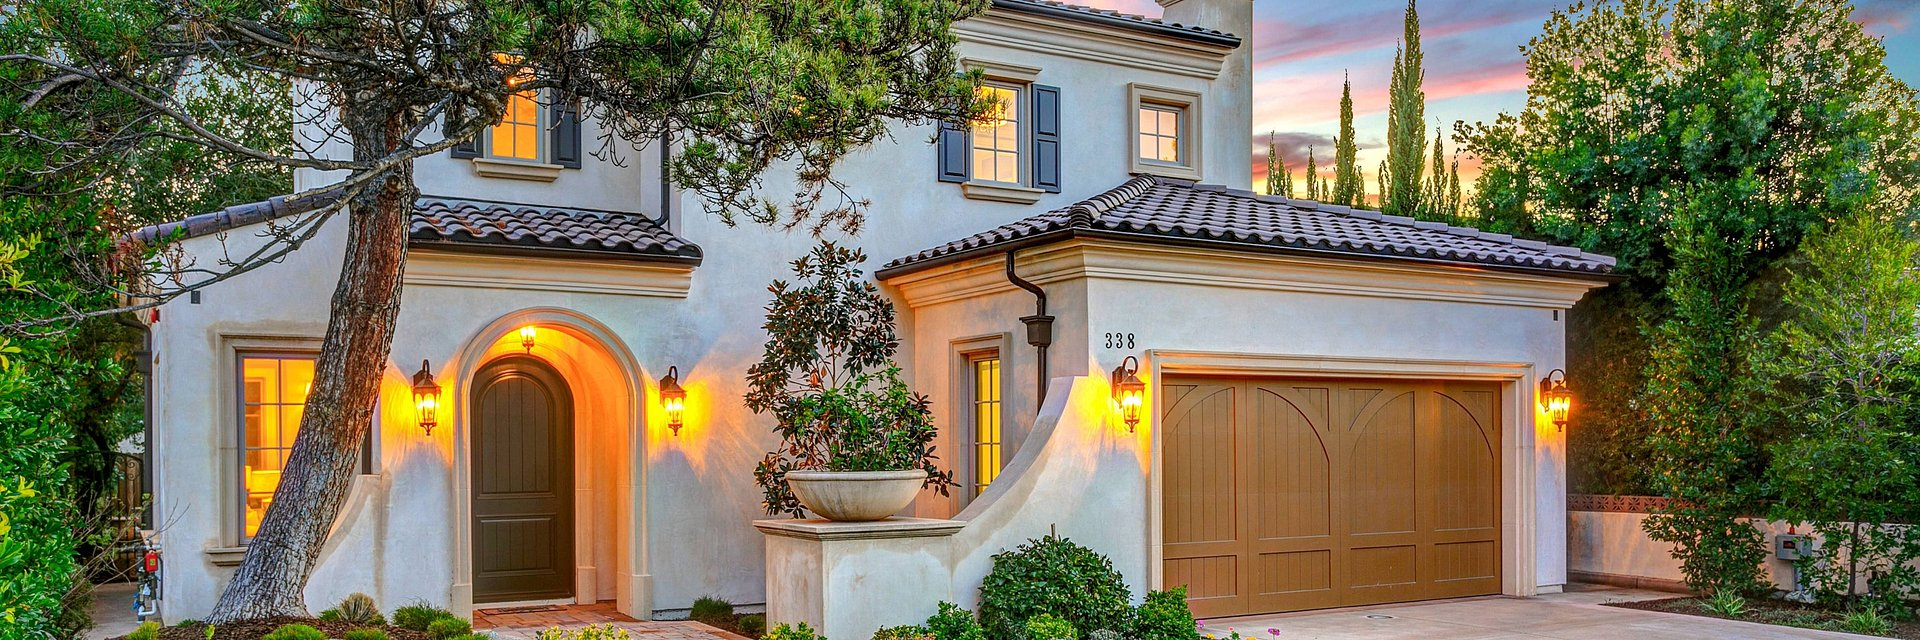 Coldwell Banker Residential Brokerage Lists Arcadia Property for $2.298 Million